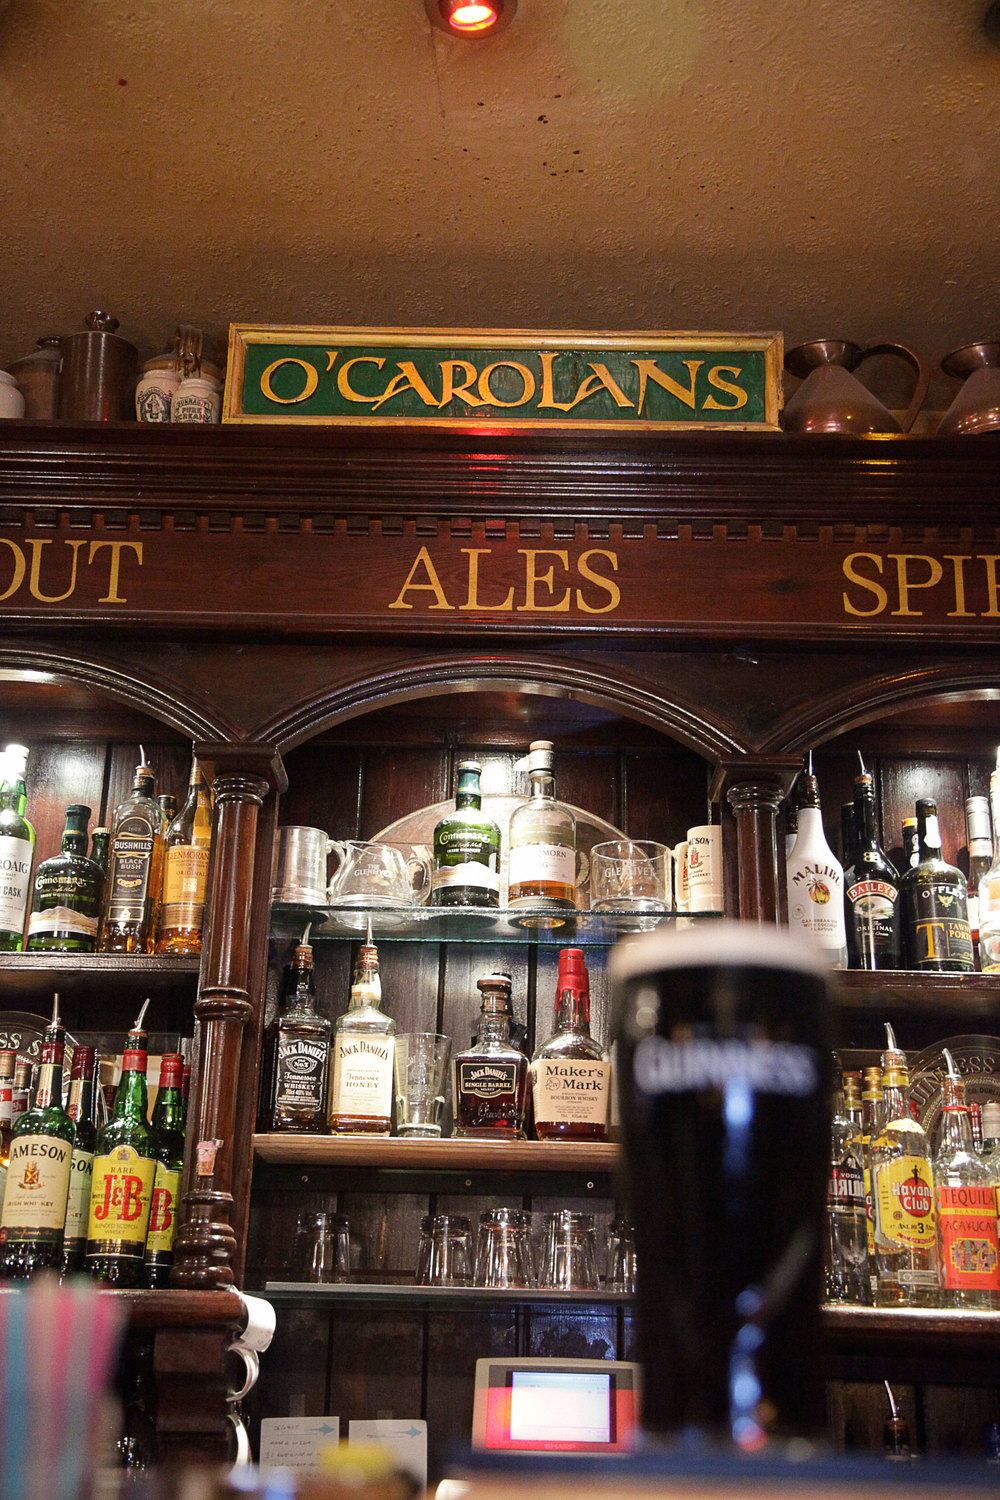 O'Carolans antique back bar Montpellier France CAROLANS_132.jpg